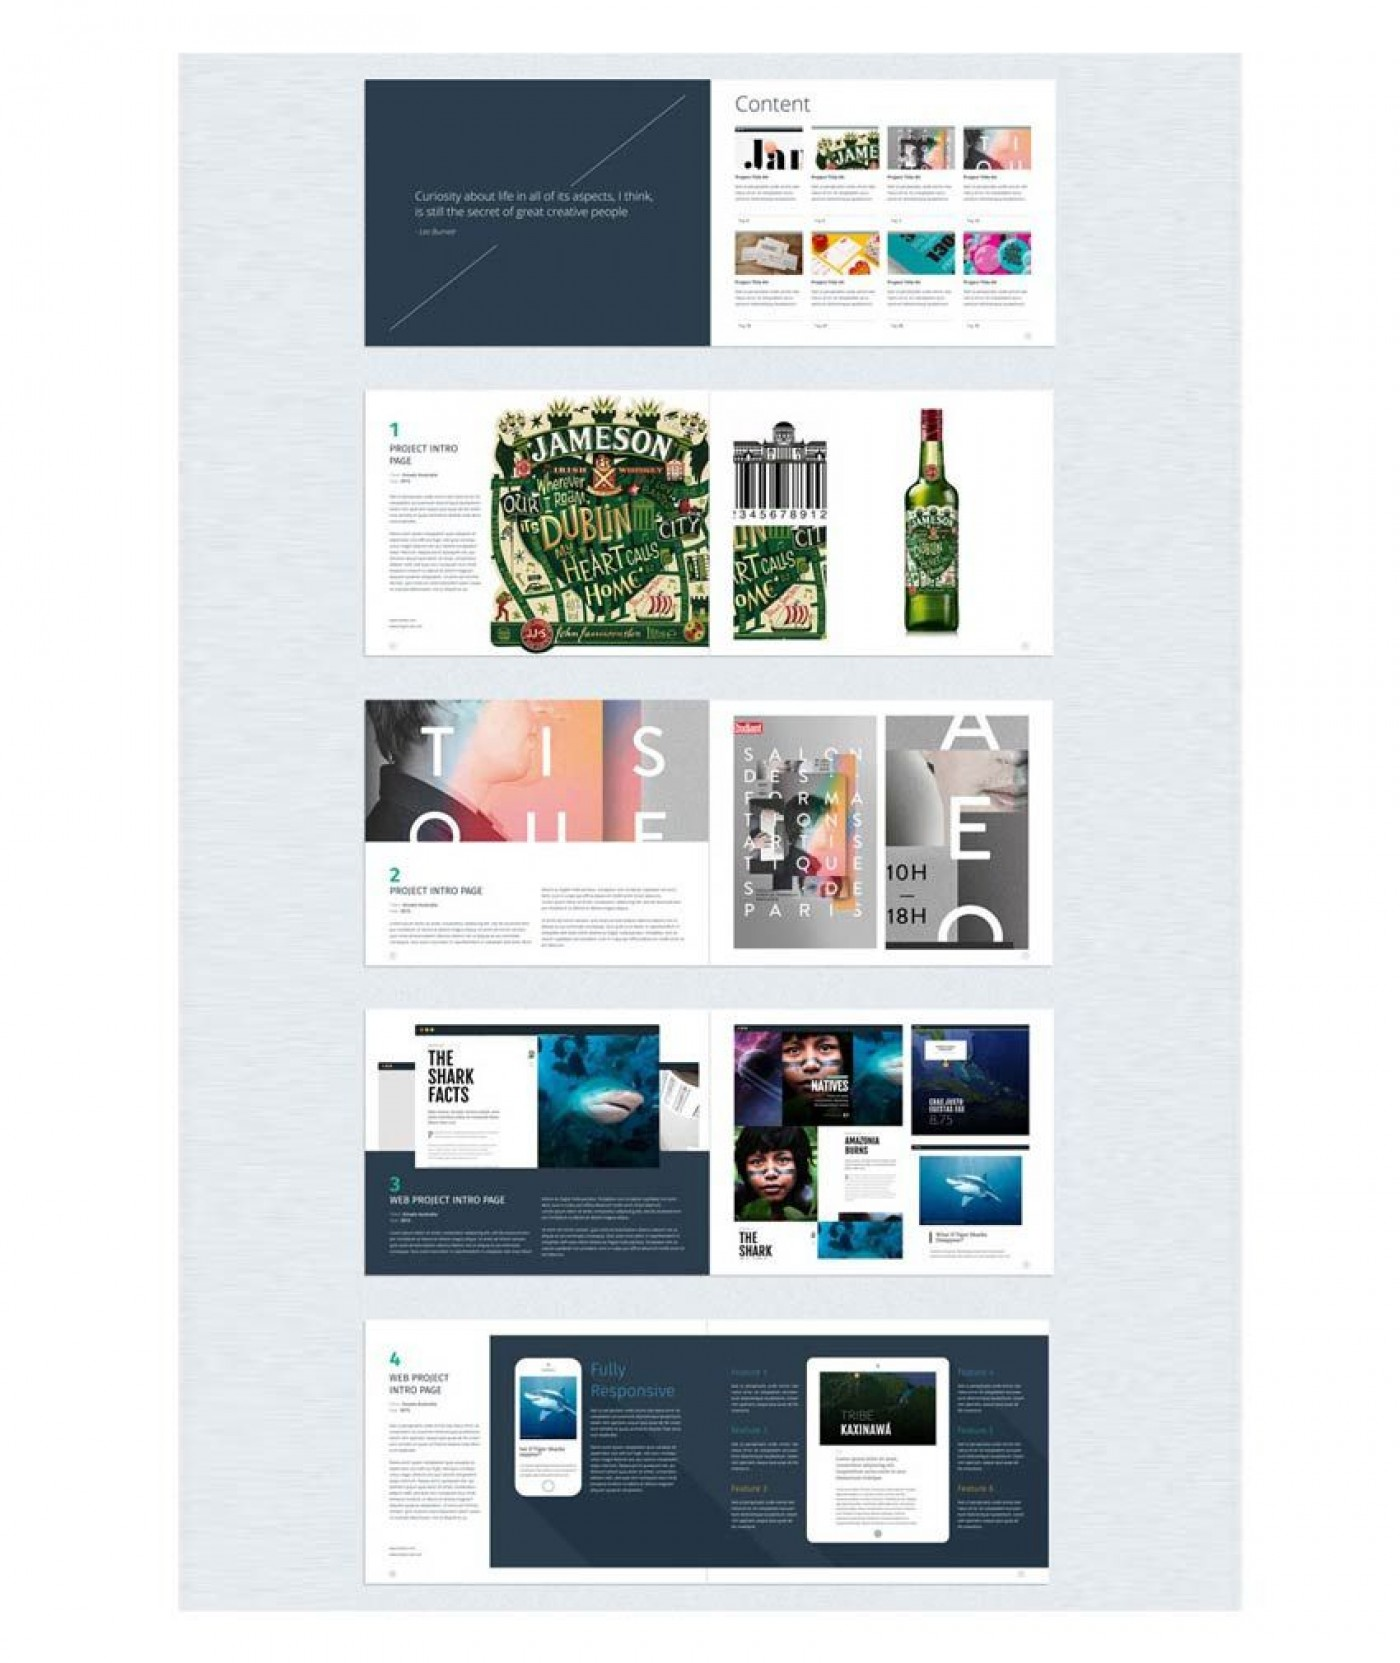 006 Fascinating In Design Portfolio Template Inspiration  Free Indesign A3 Photography Graphic Download1400